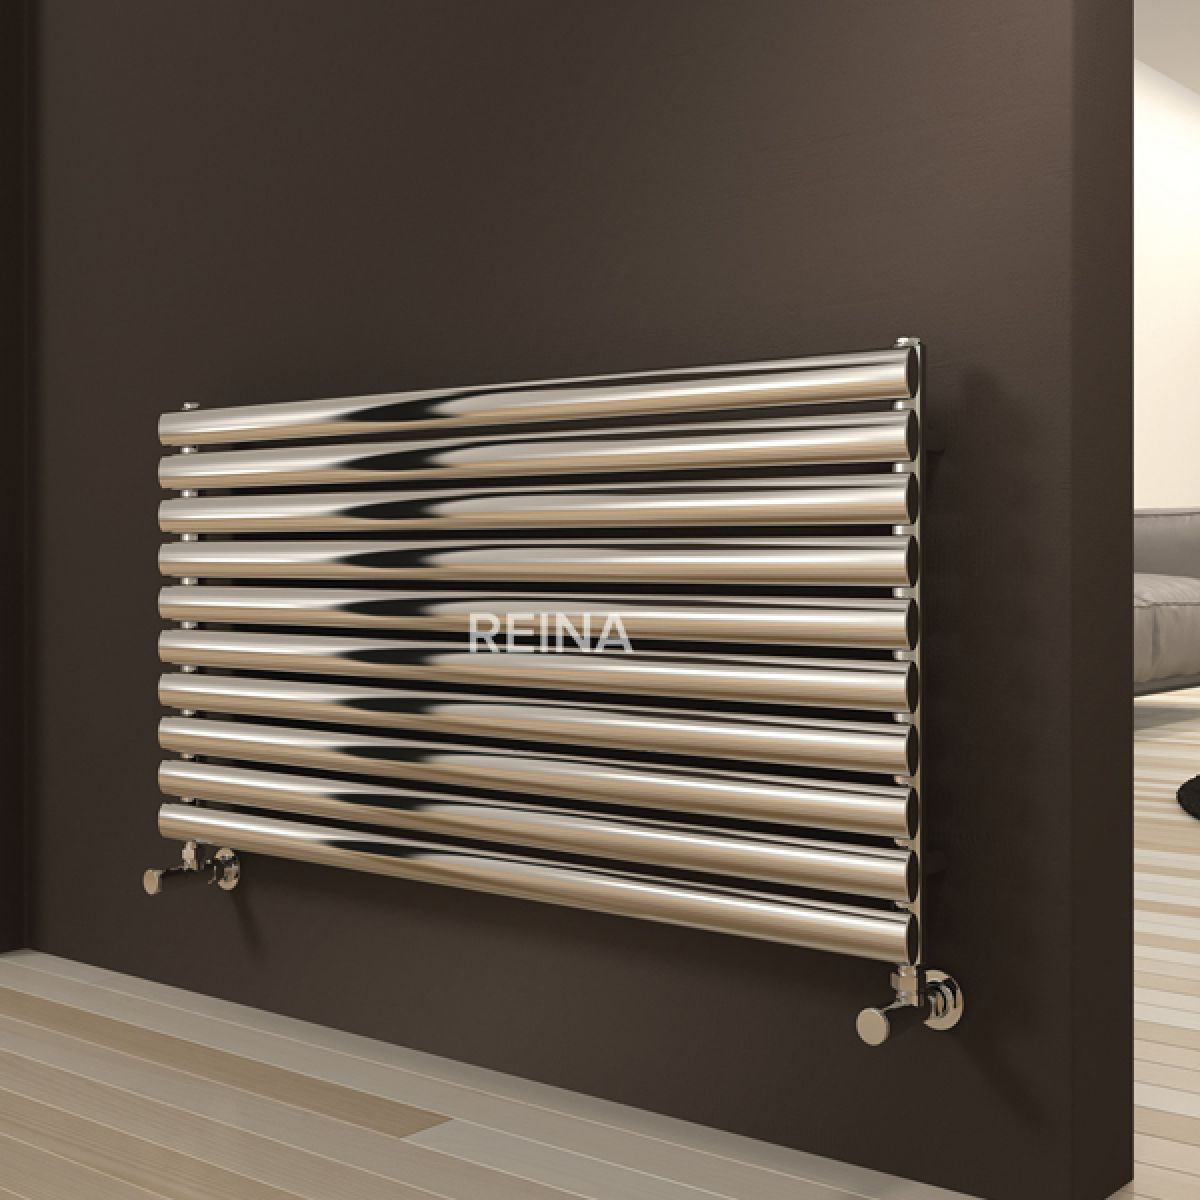 Reina Artena Polished Single Panel Steel Radiator 590 x 1200mm